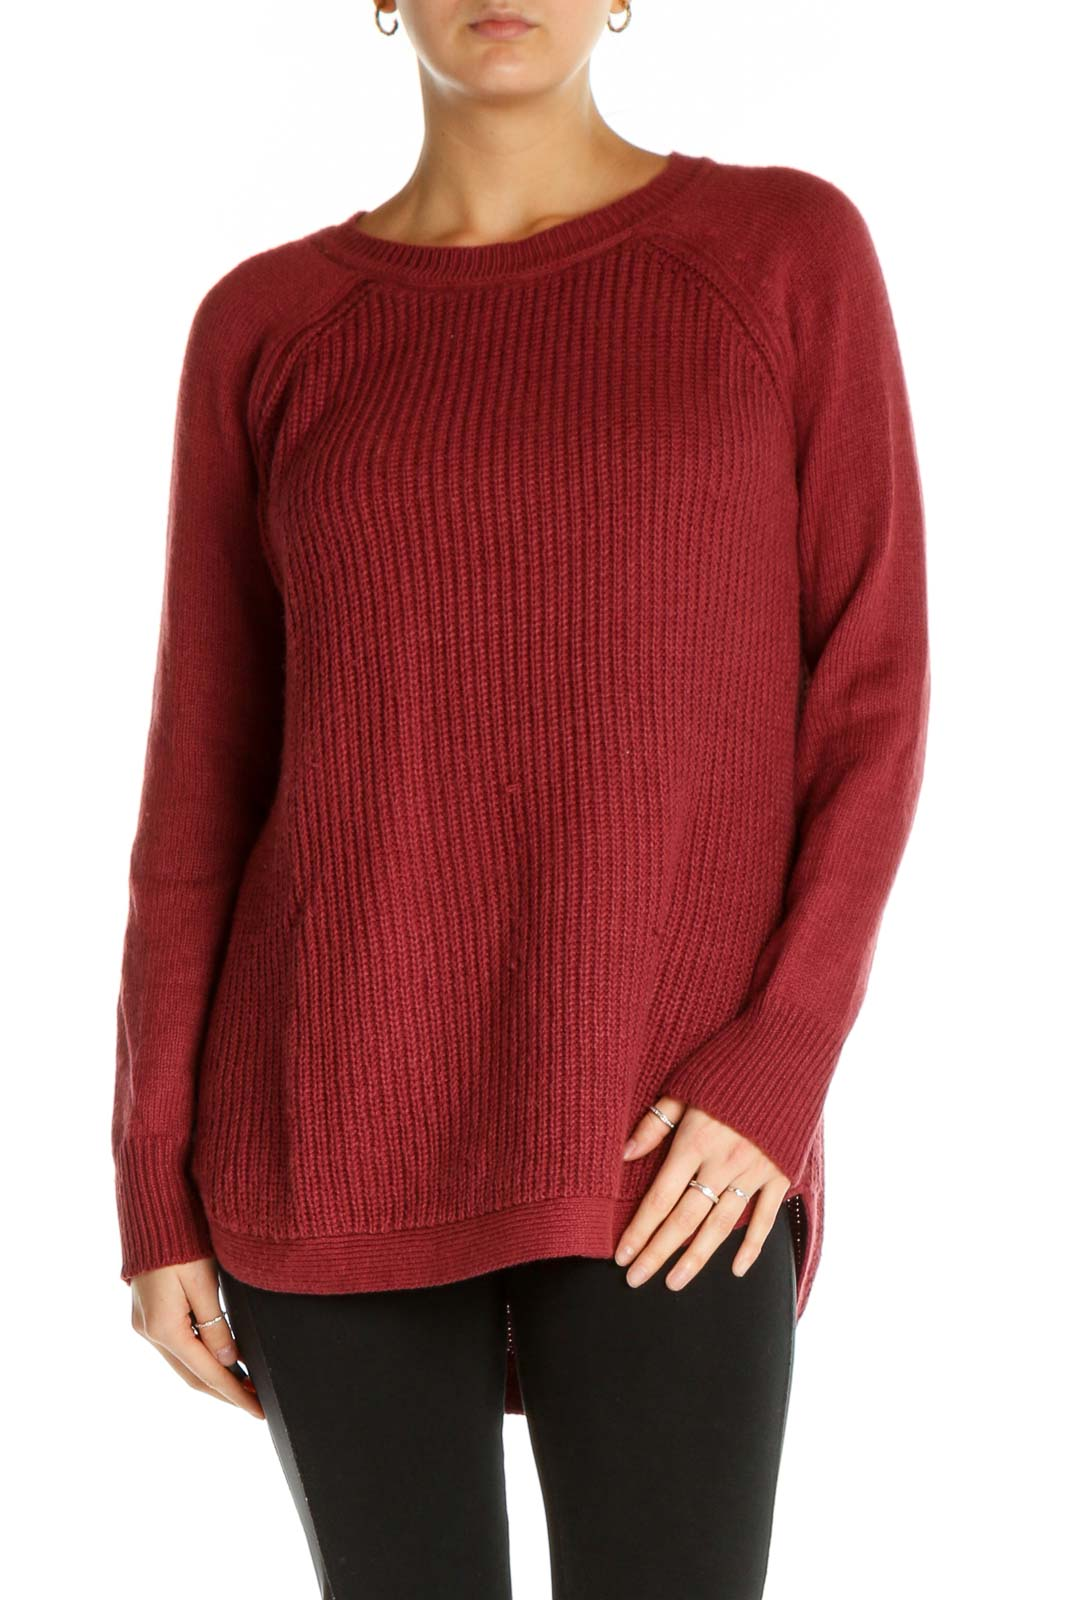 Red Textured All Day Wear Sweater Front